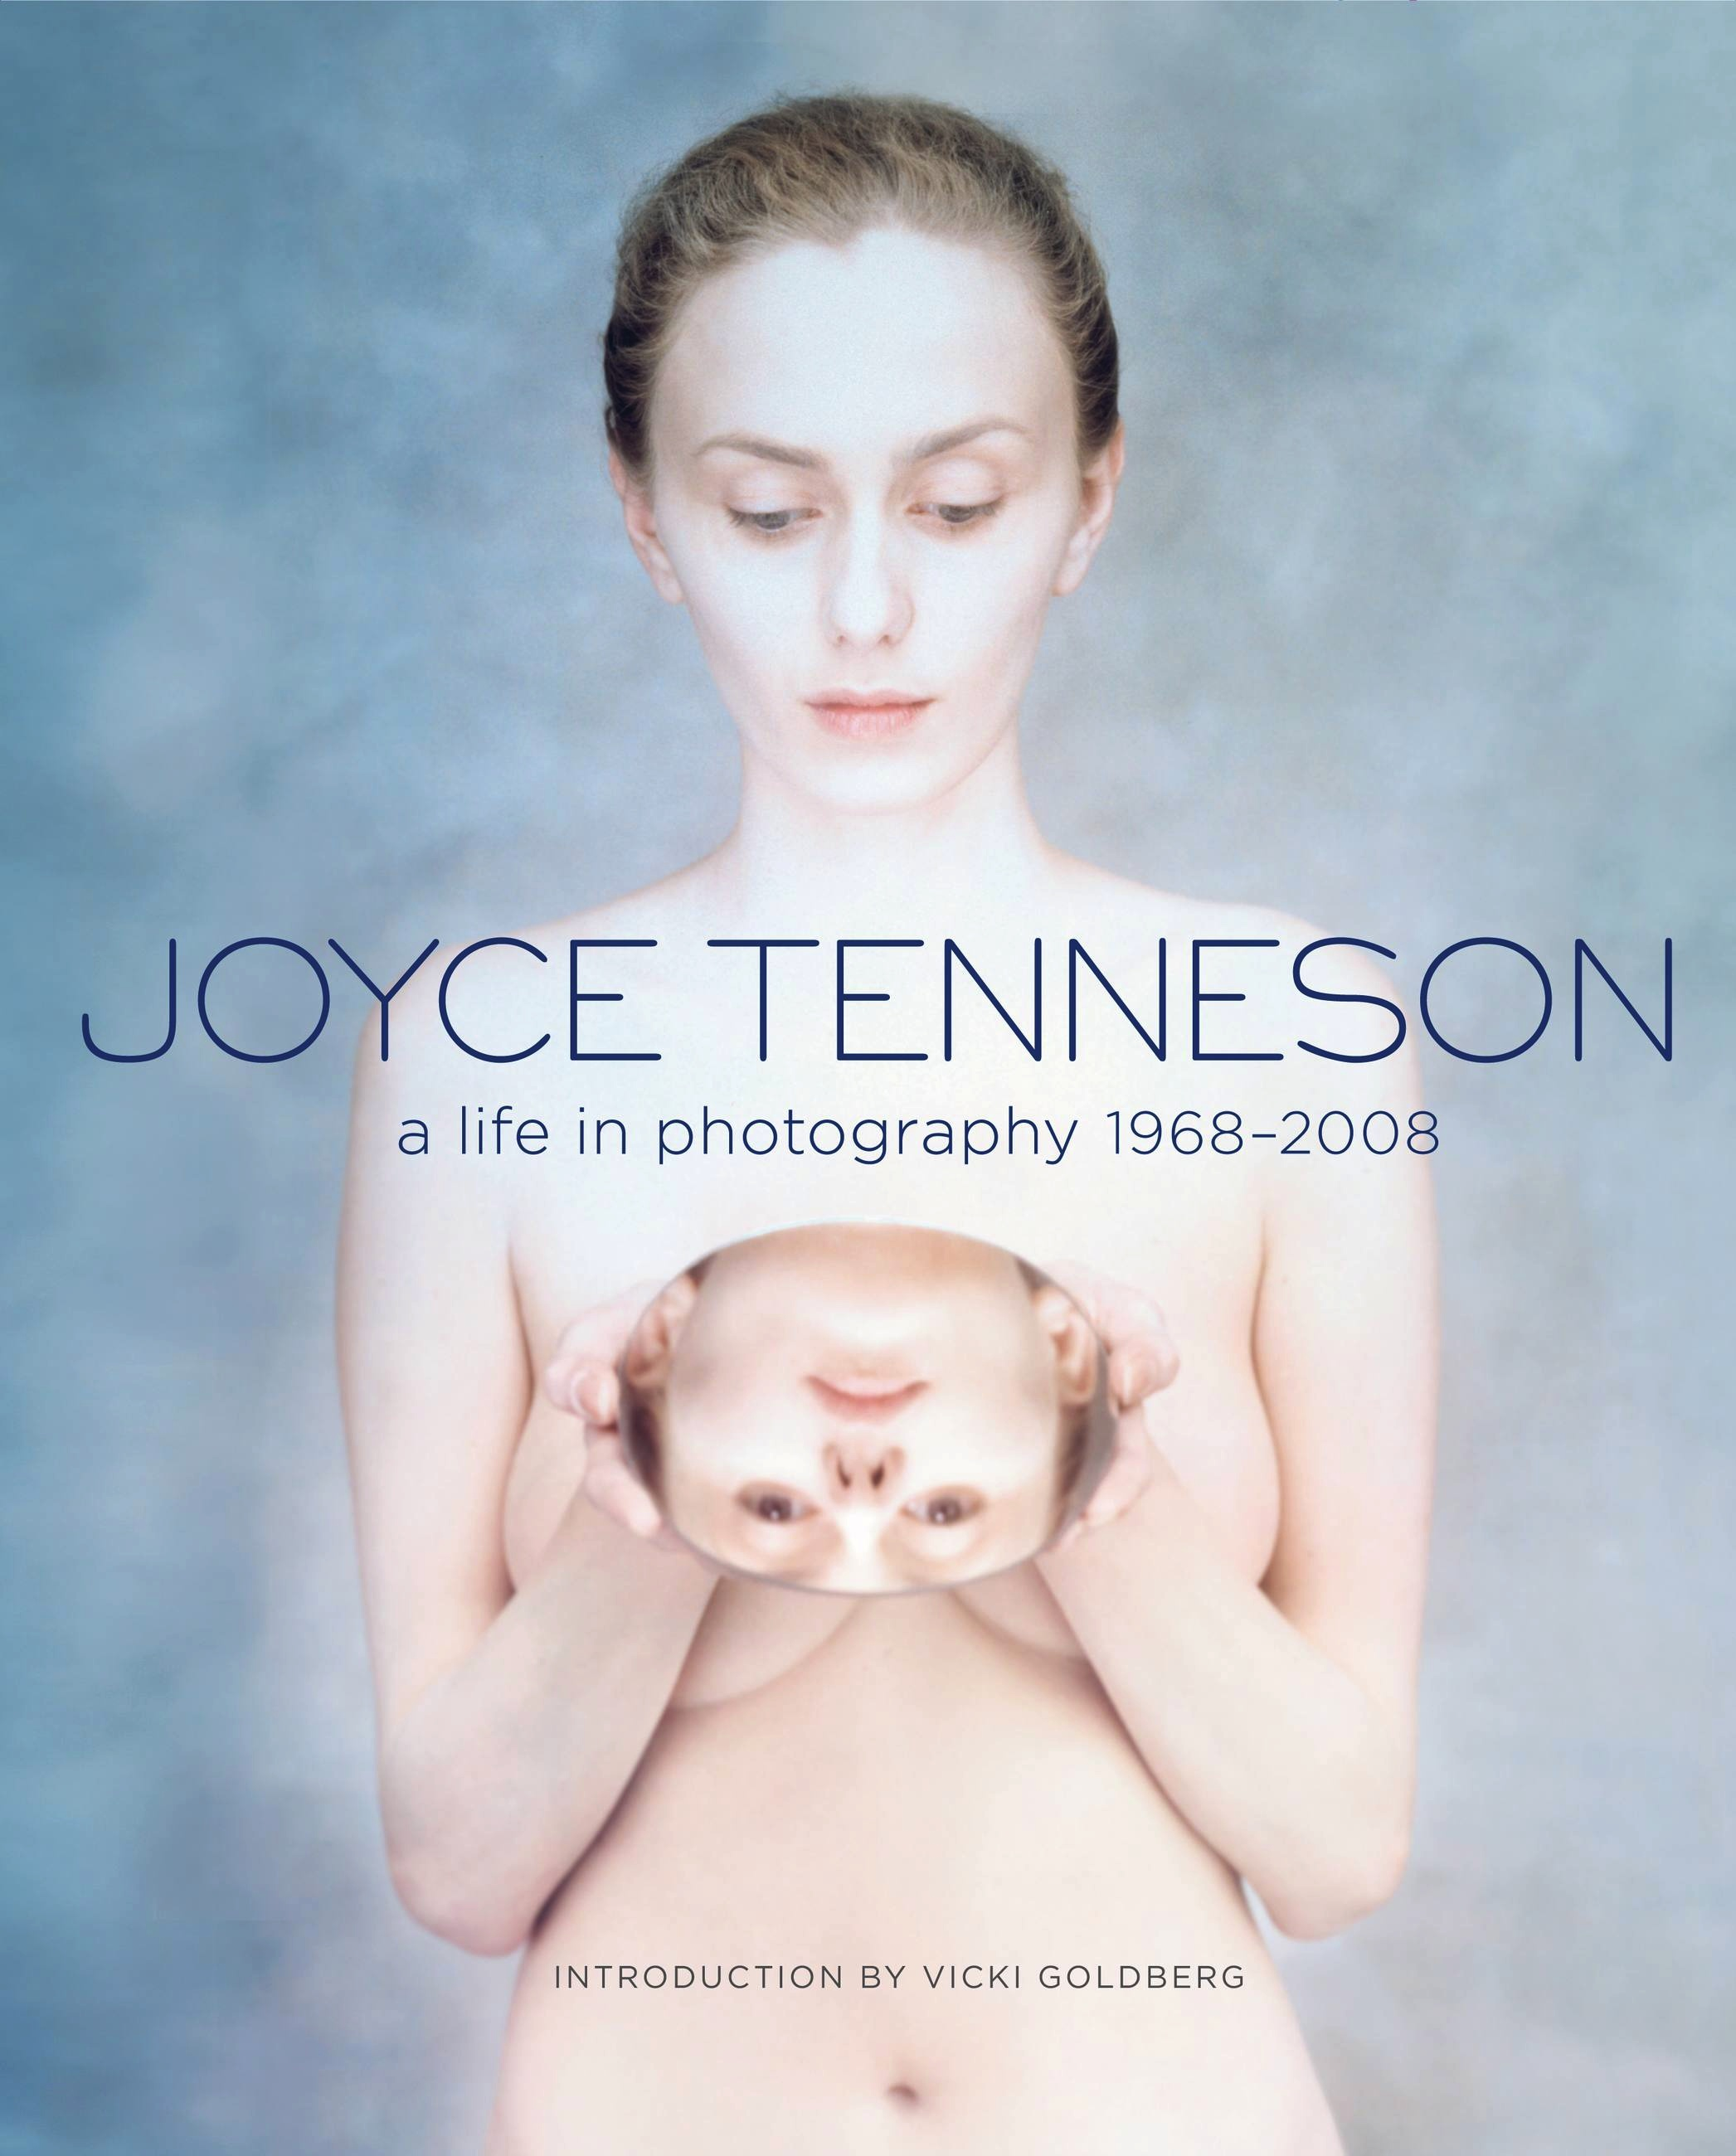 Joyce Tenneson: A Life in Photography